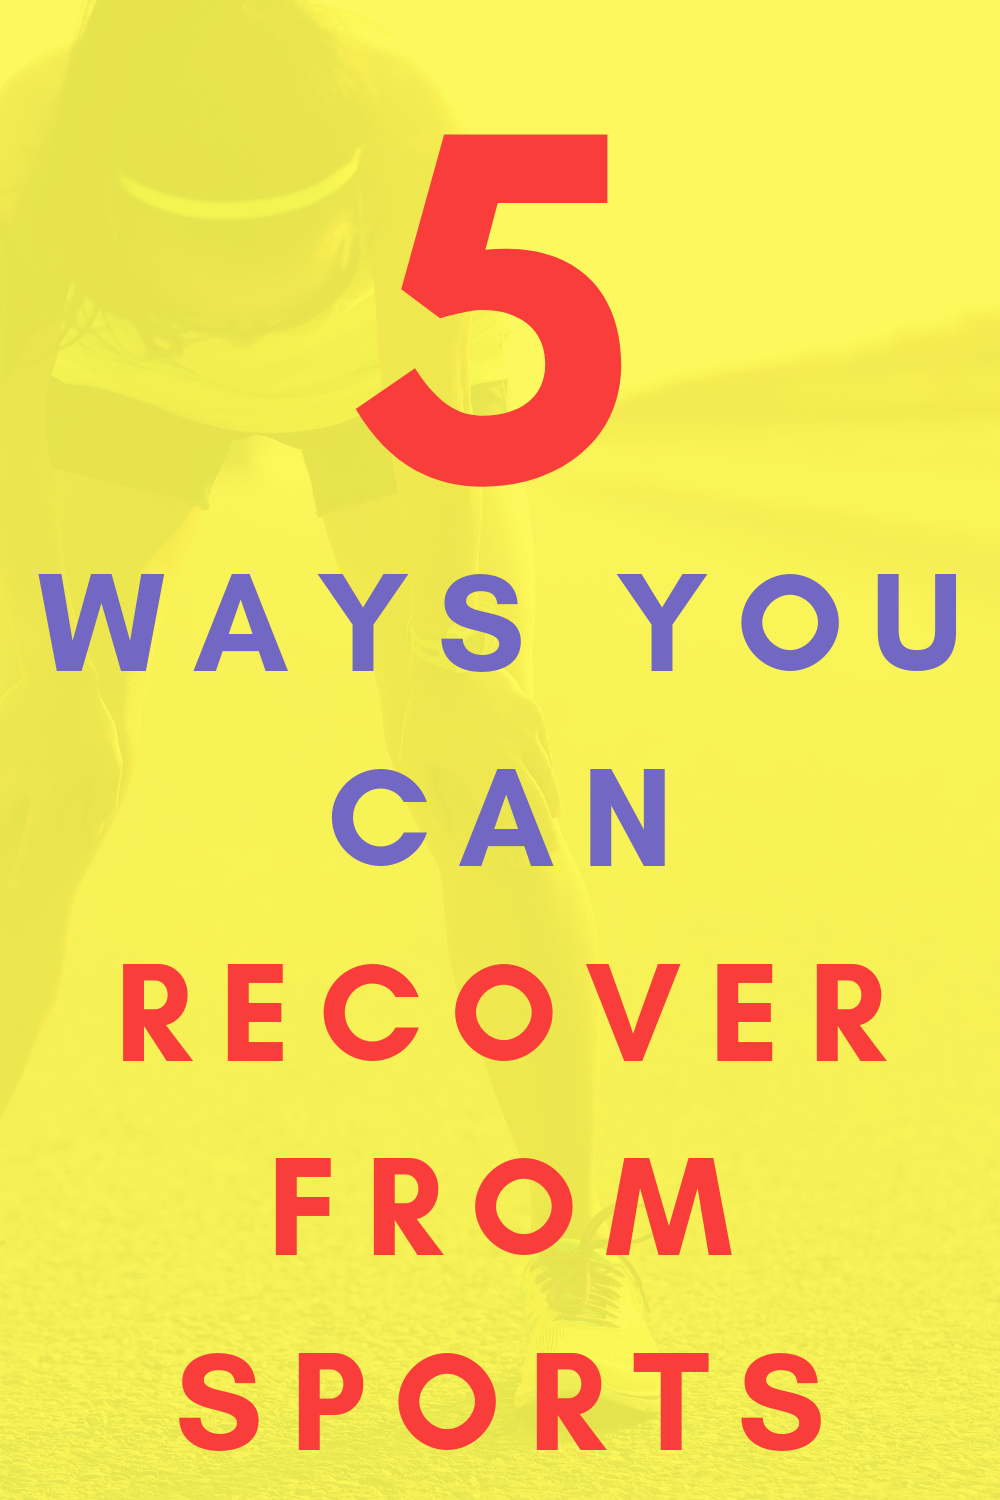 Here are 5 awesome ways to recover from your workout! #recovery #sports #fitness #workout #training...